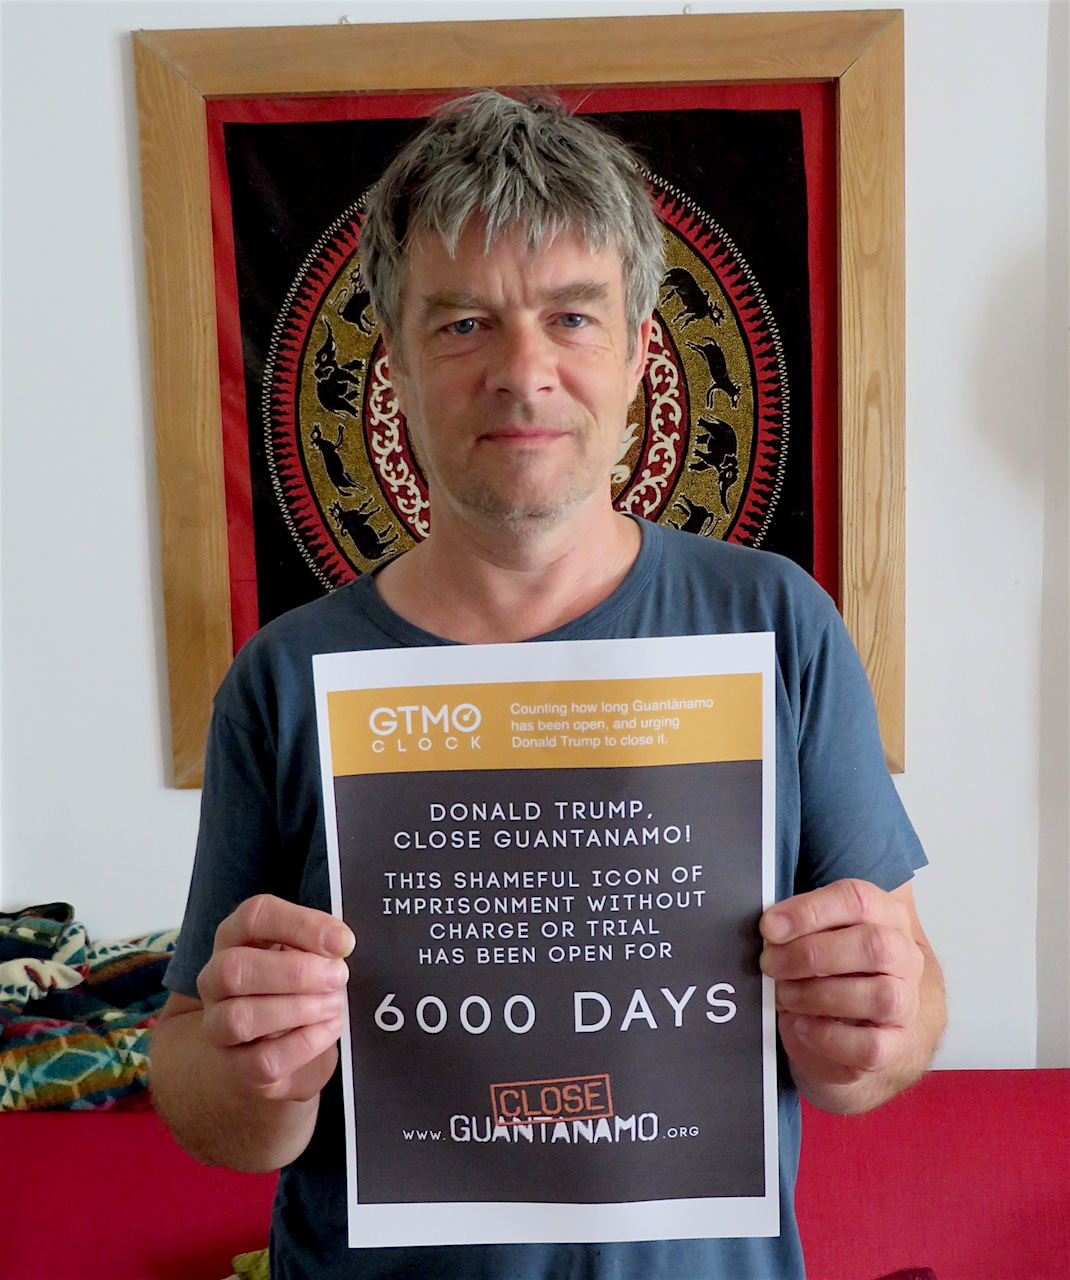 Andy Worthington marks 6,000 days of Guantanamo on June 15, 2018.